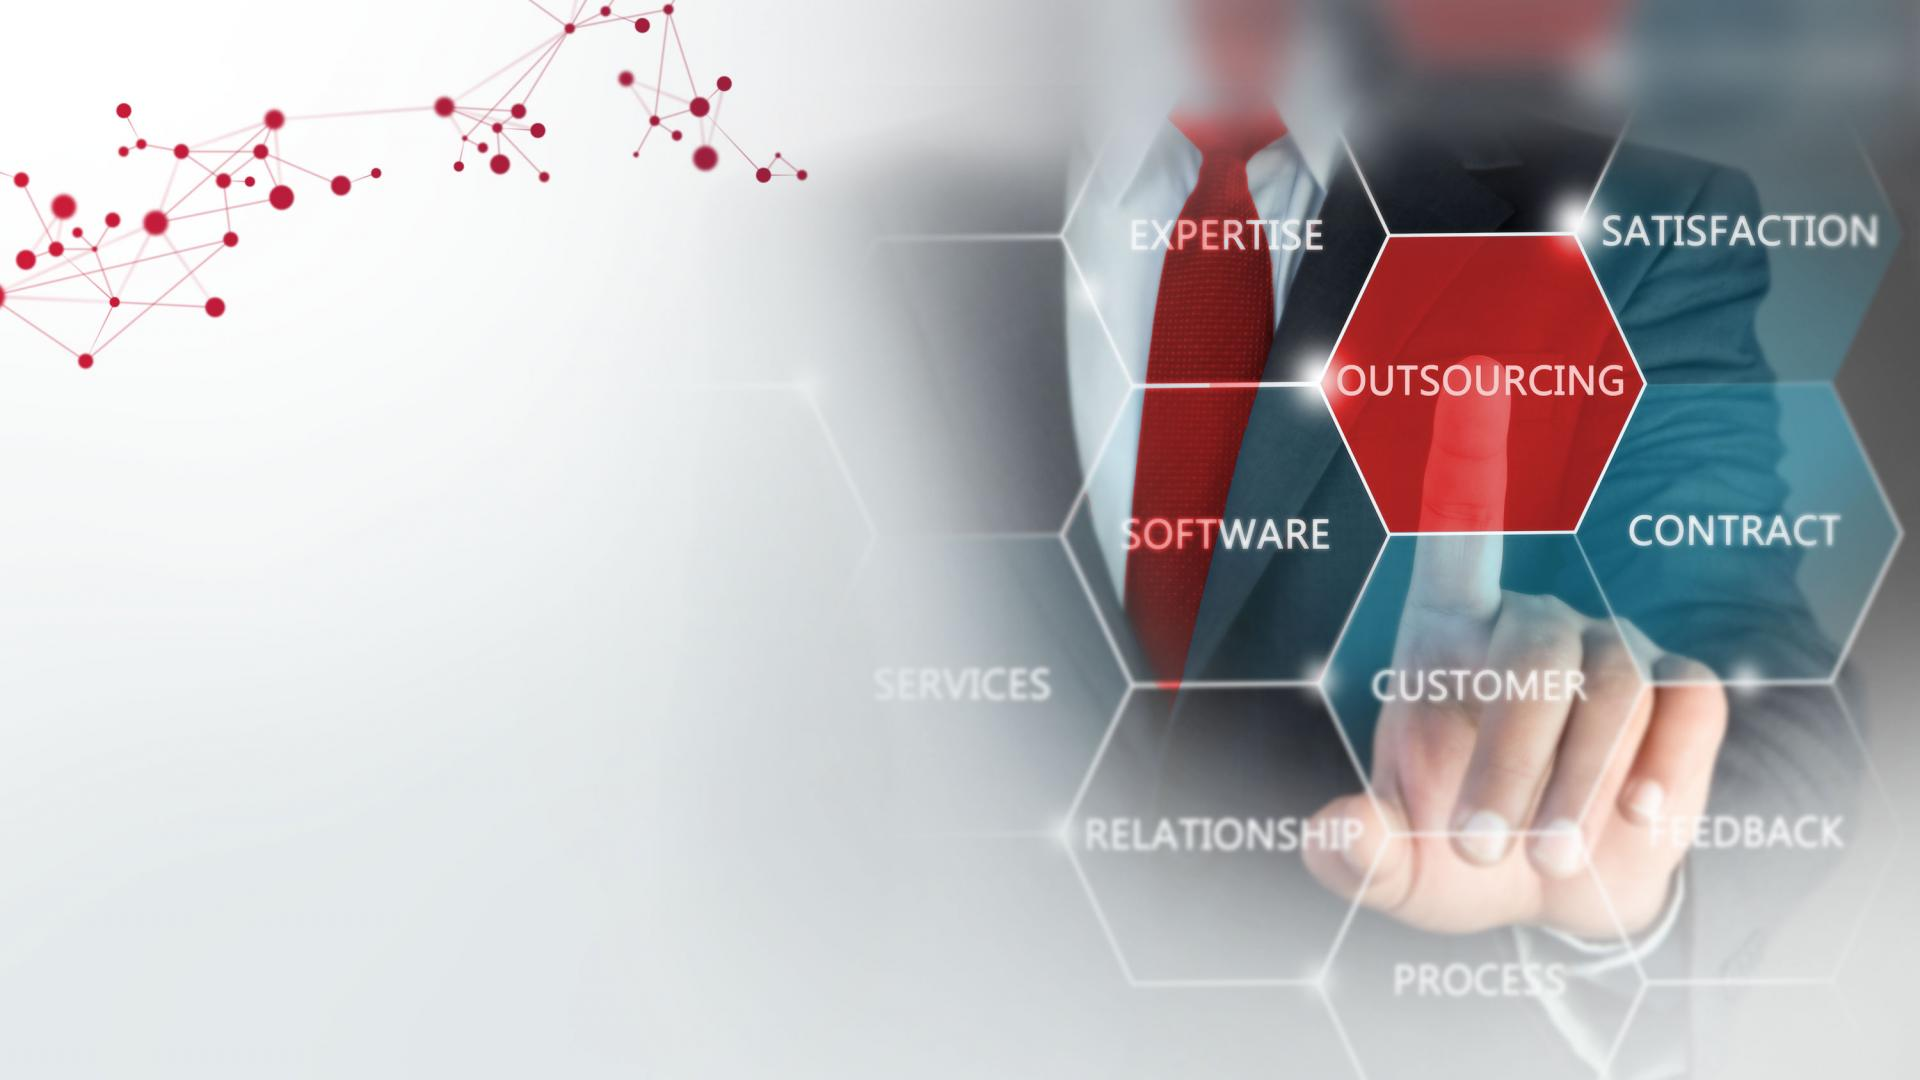 Cloudpath - IT Outsourcing Services